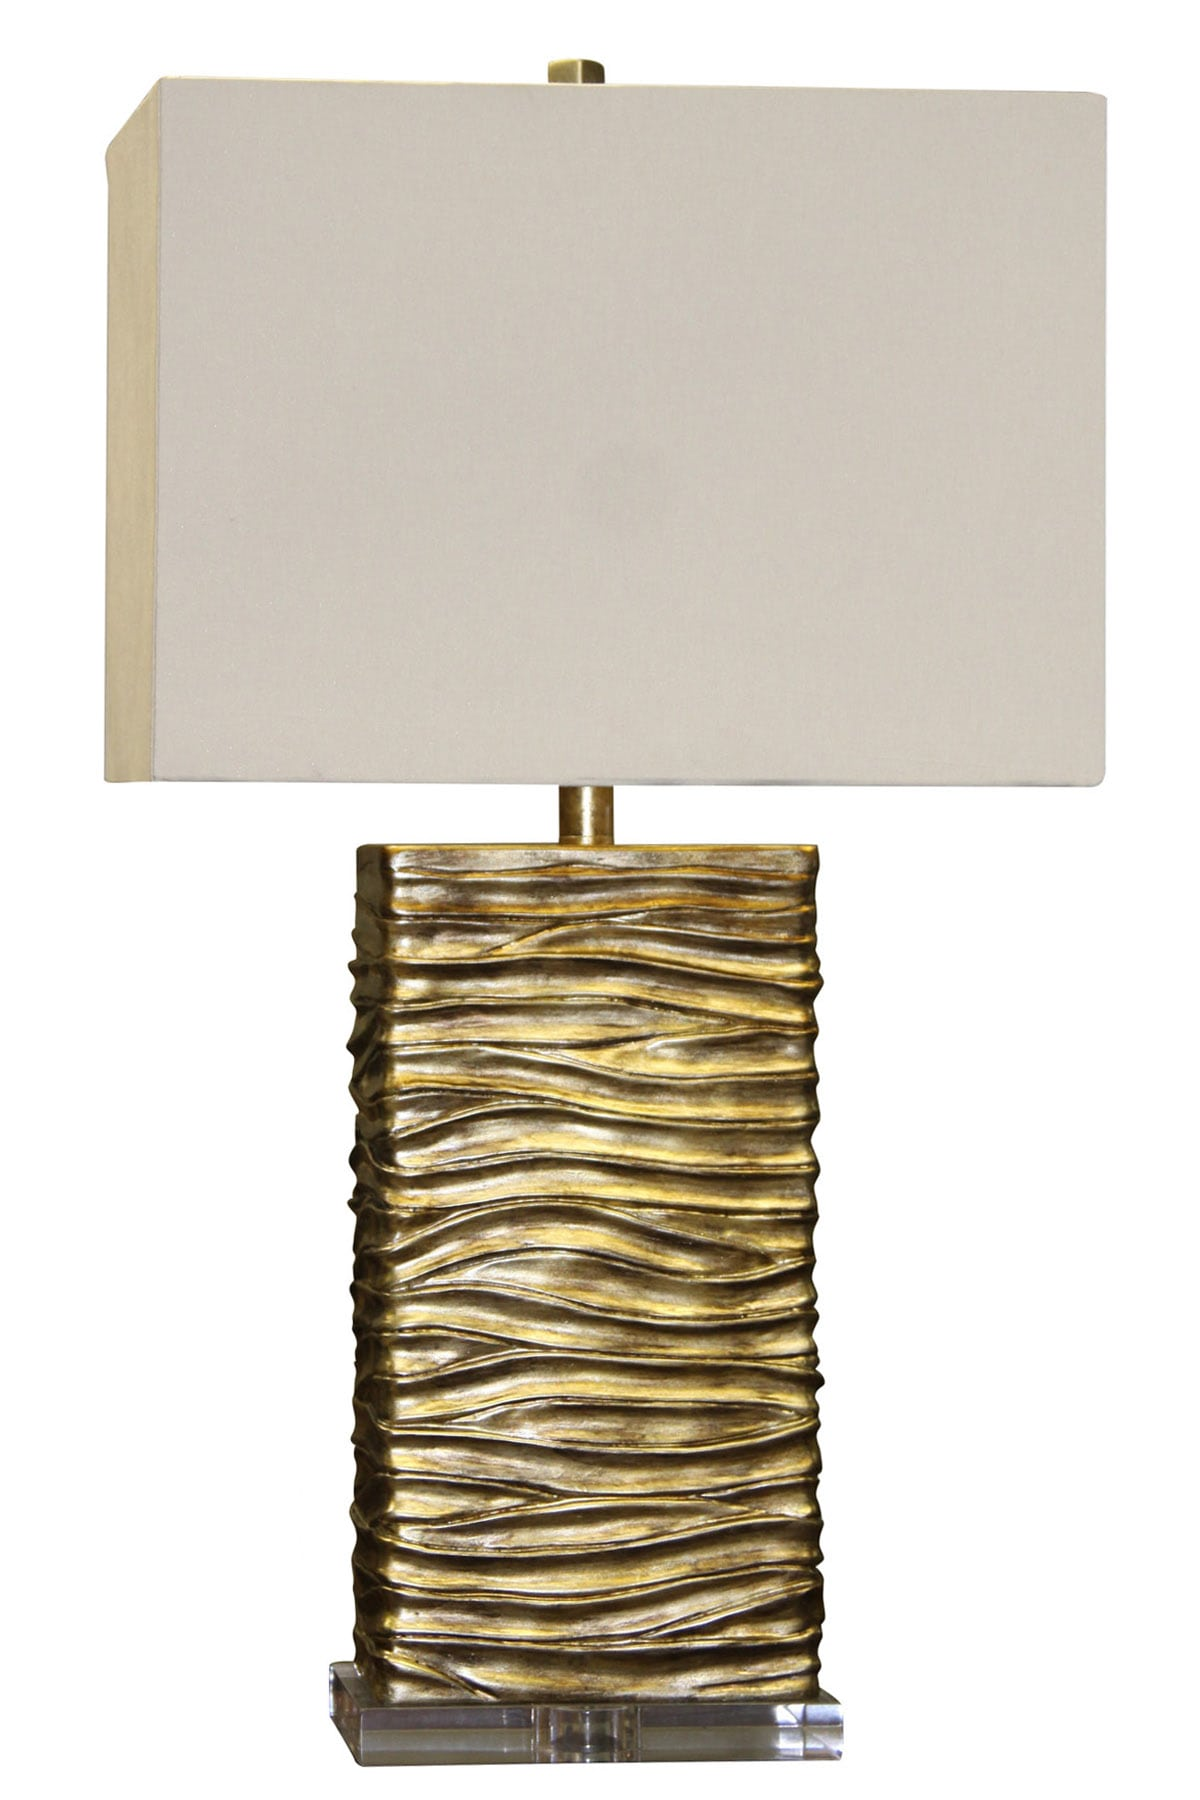 Mercury Golden Wave Table Lamp